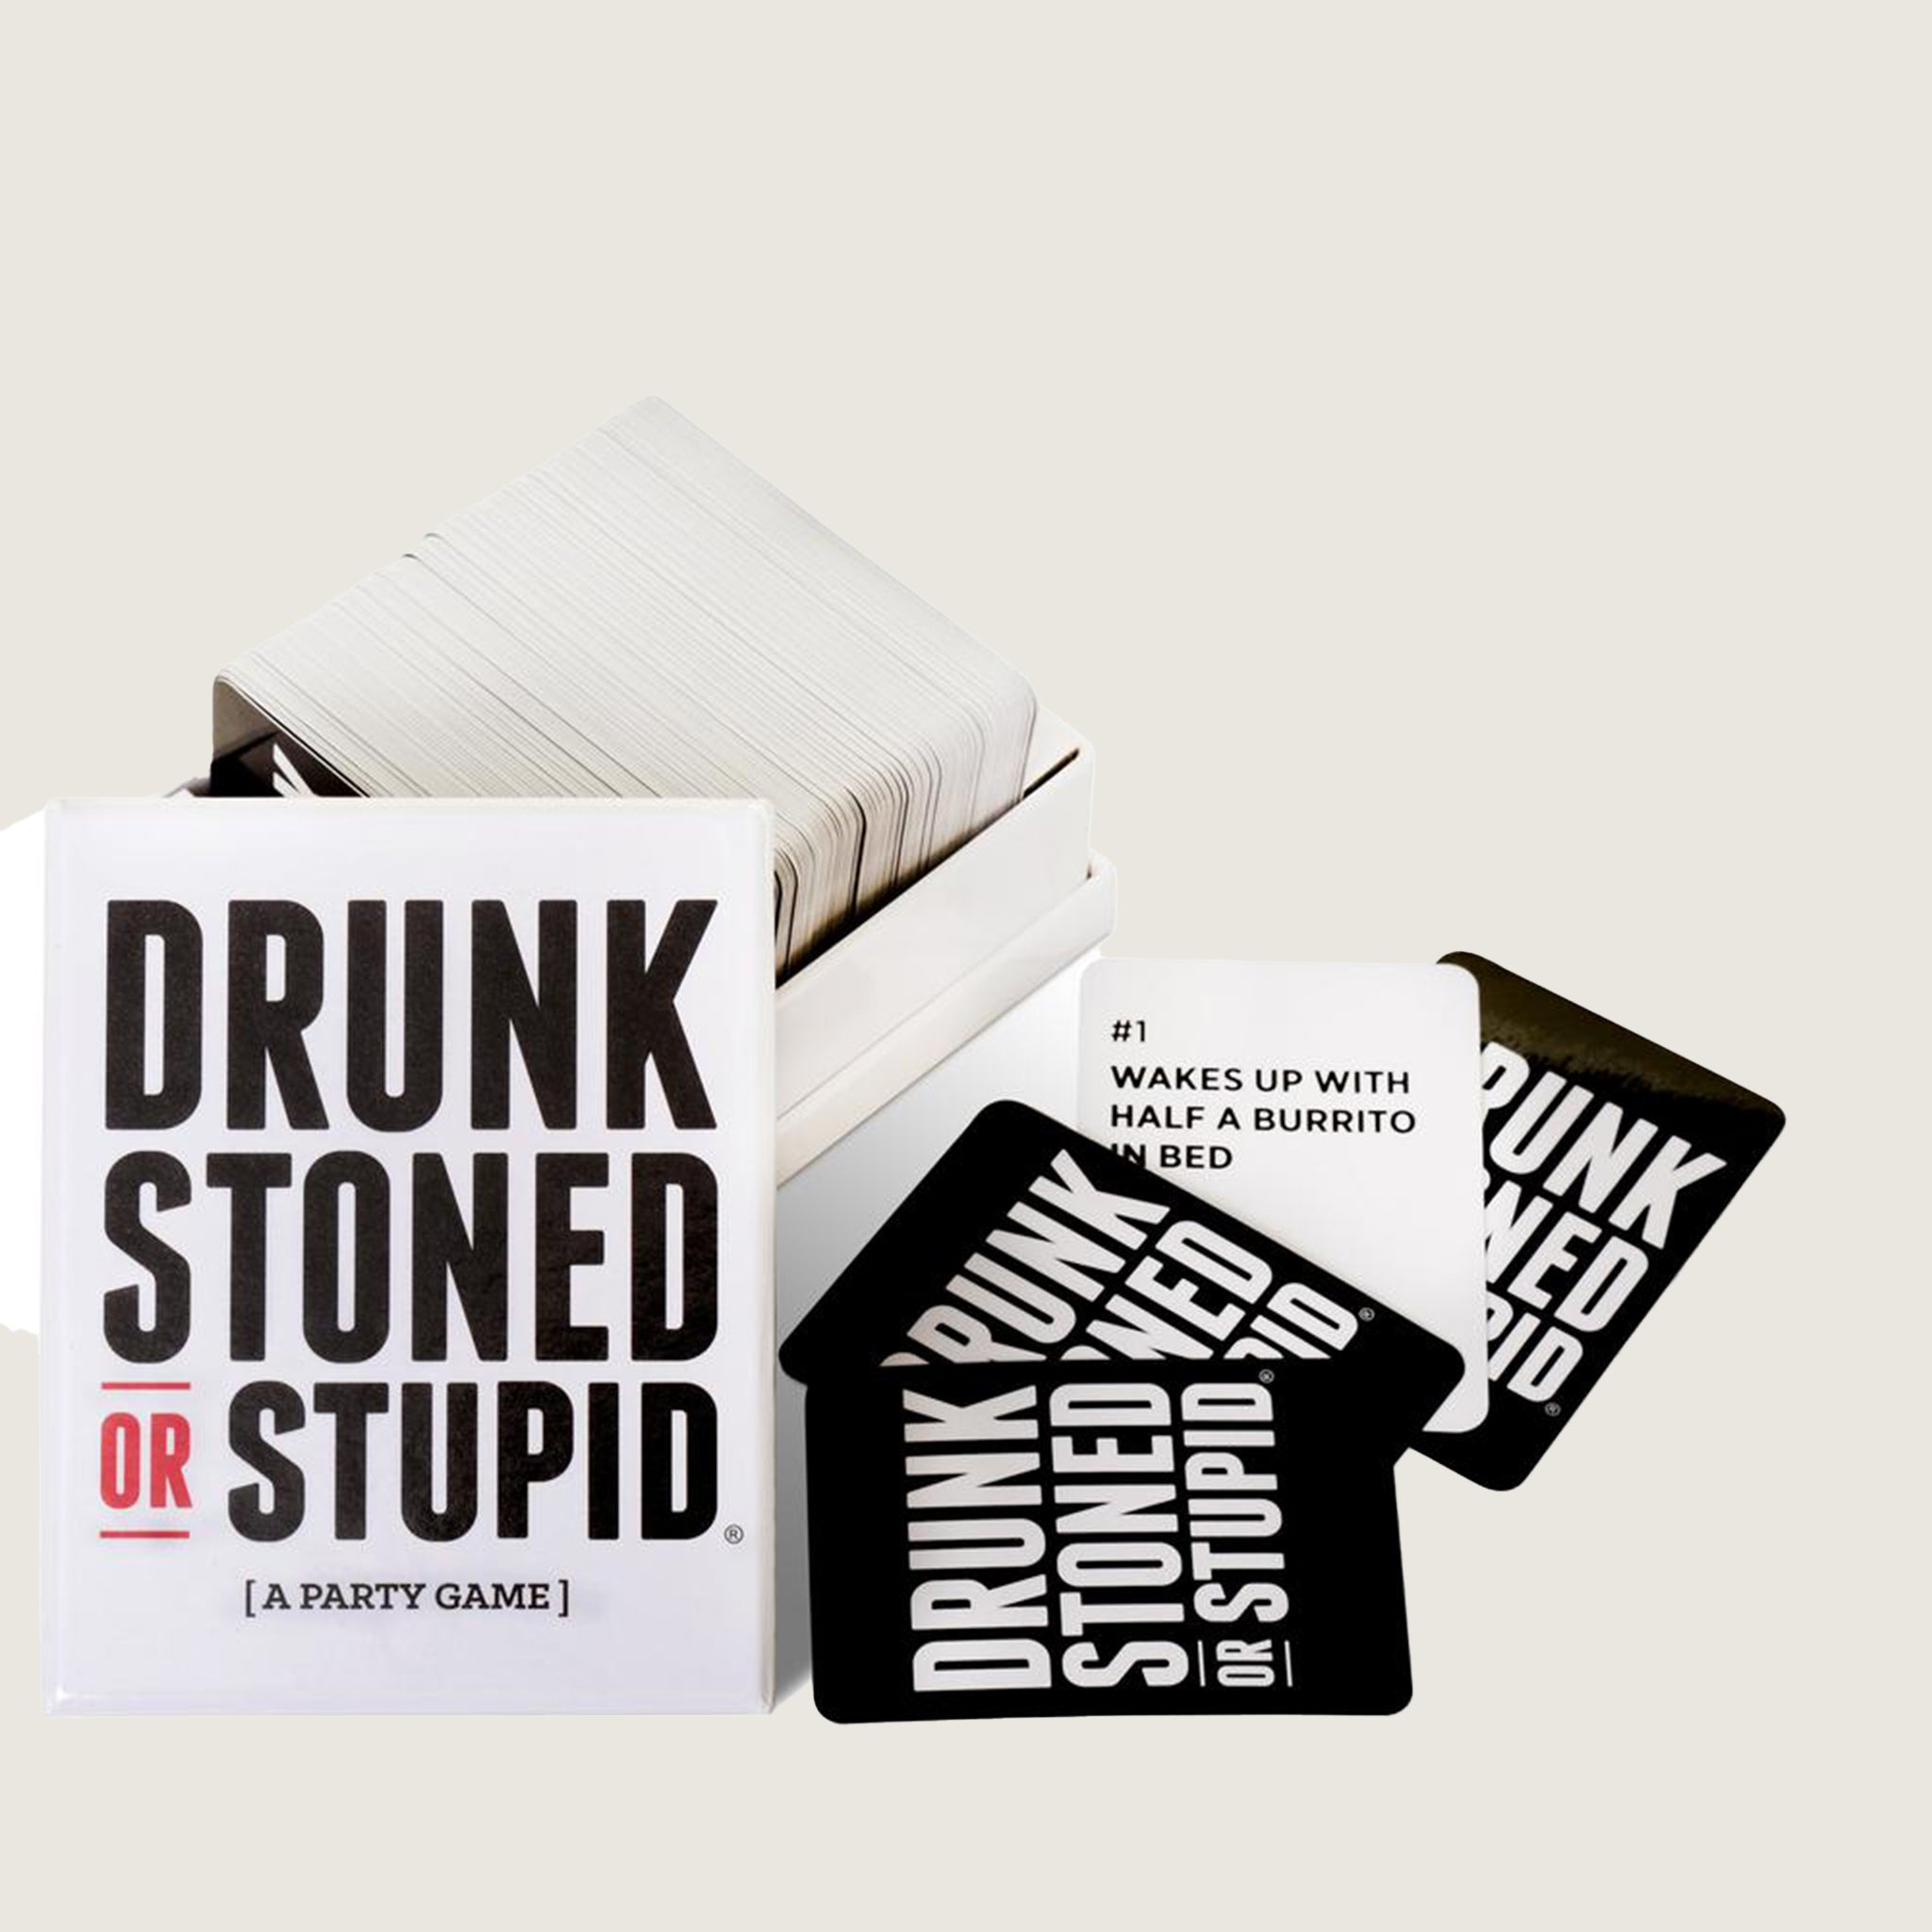 Drunk Stoned or Stupid - Blackbird General Store